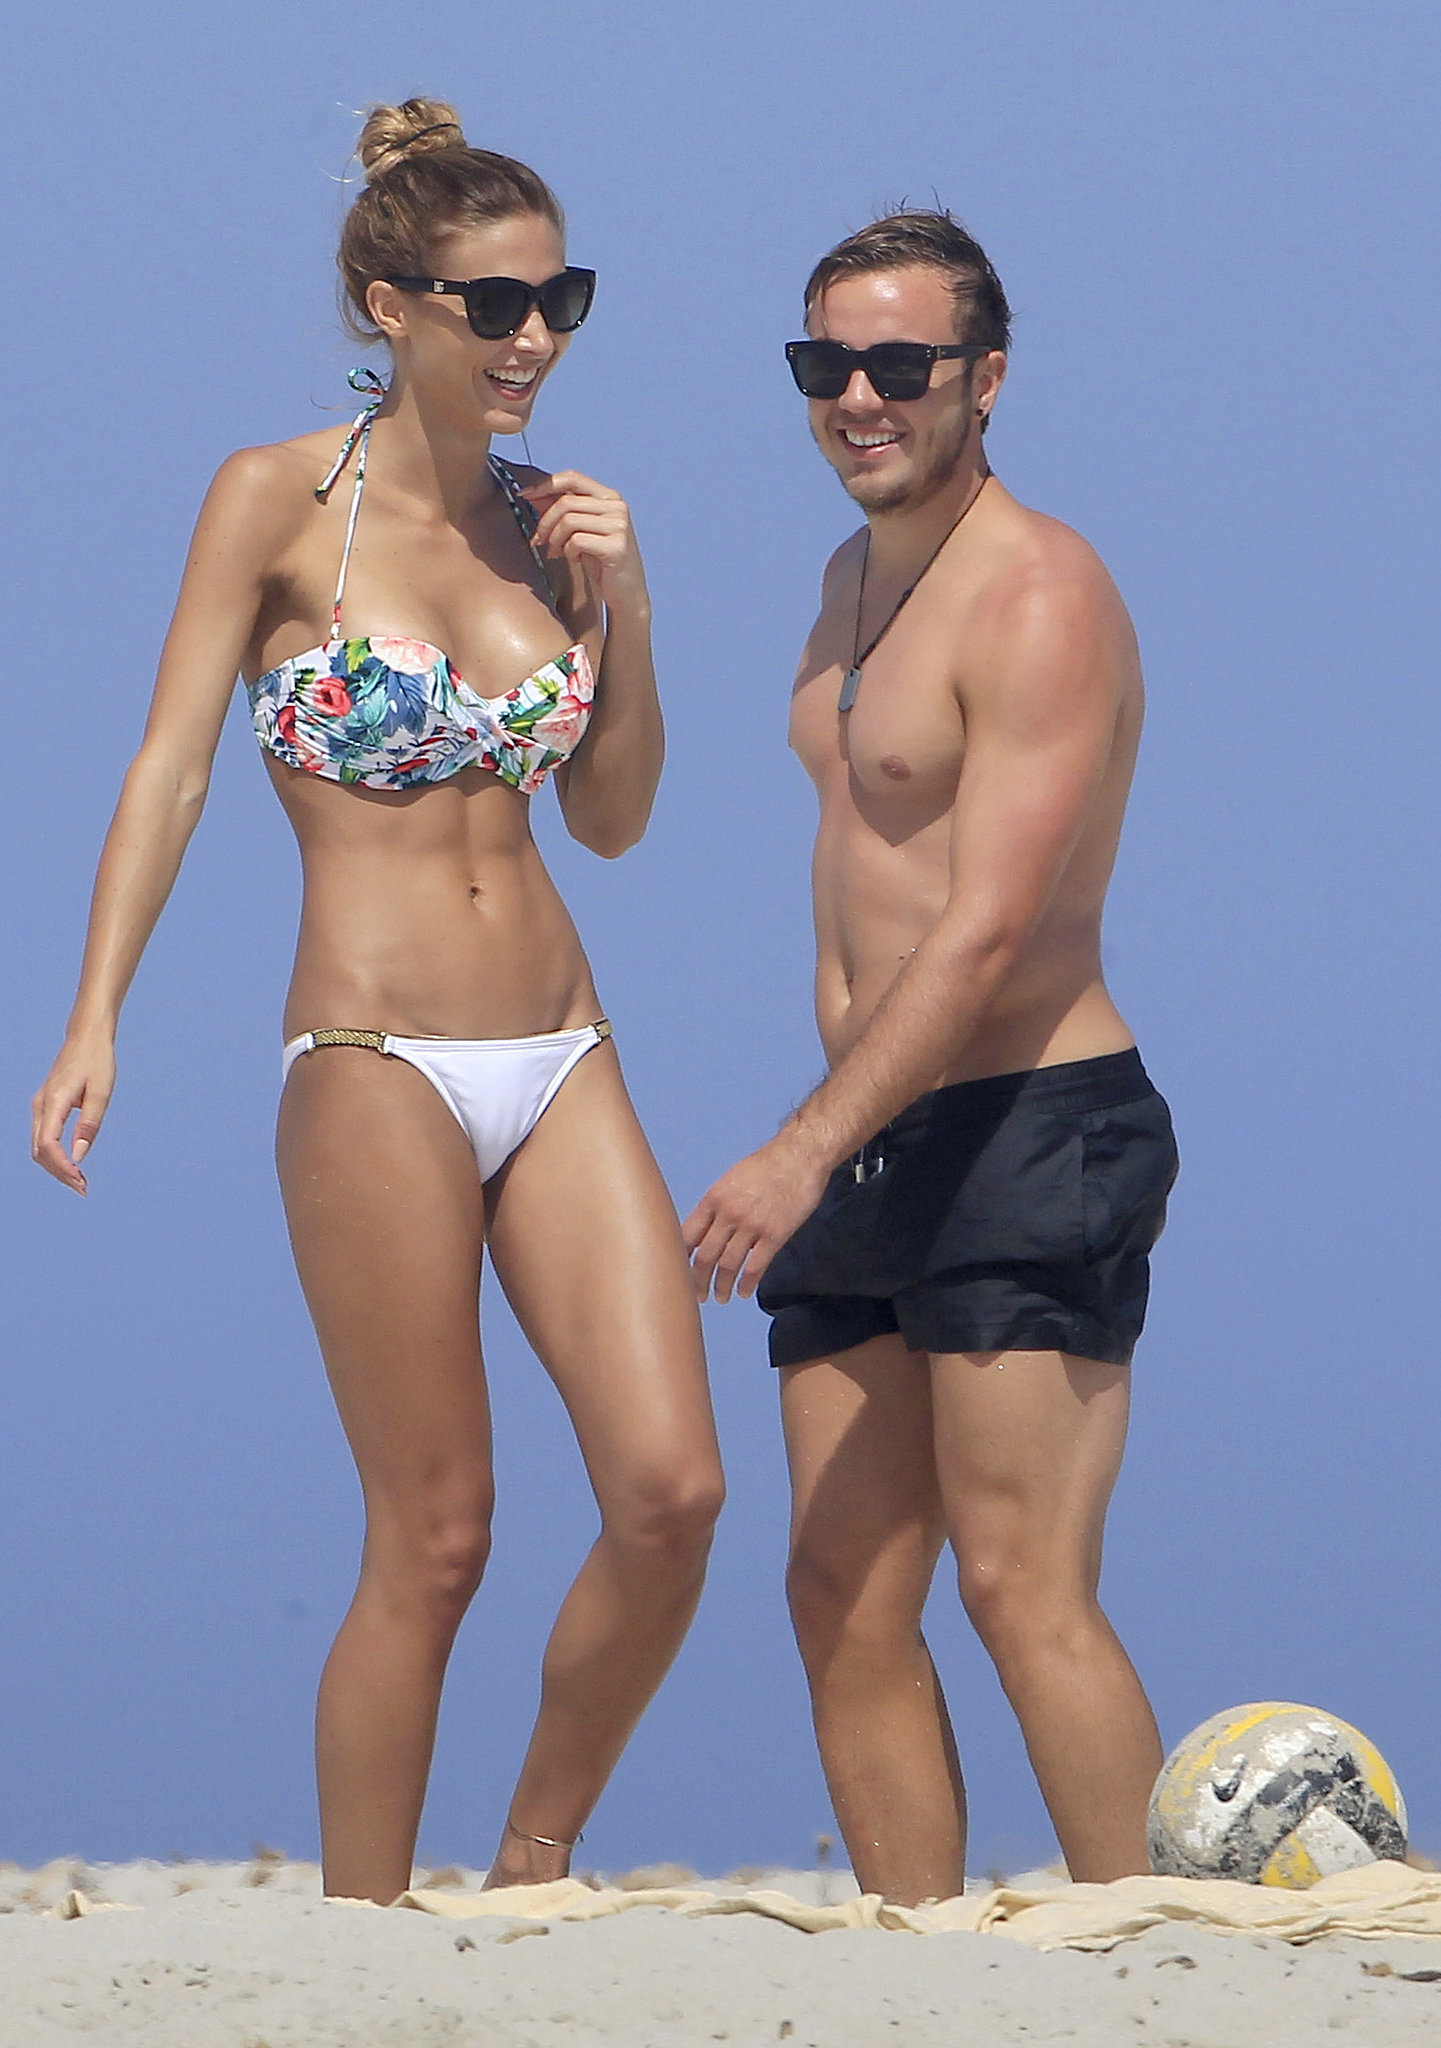 Have You Missed Mario Götze's World Cup-Winning Body?